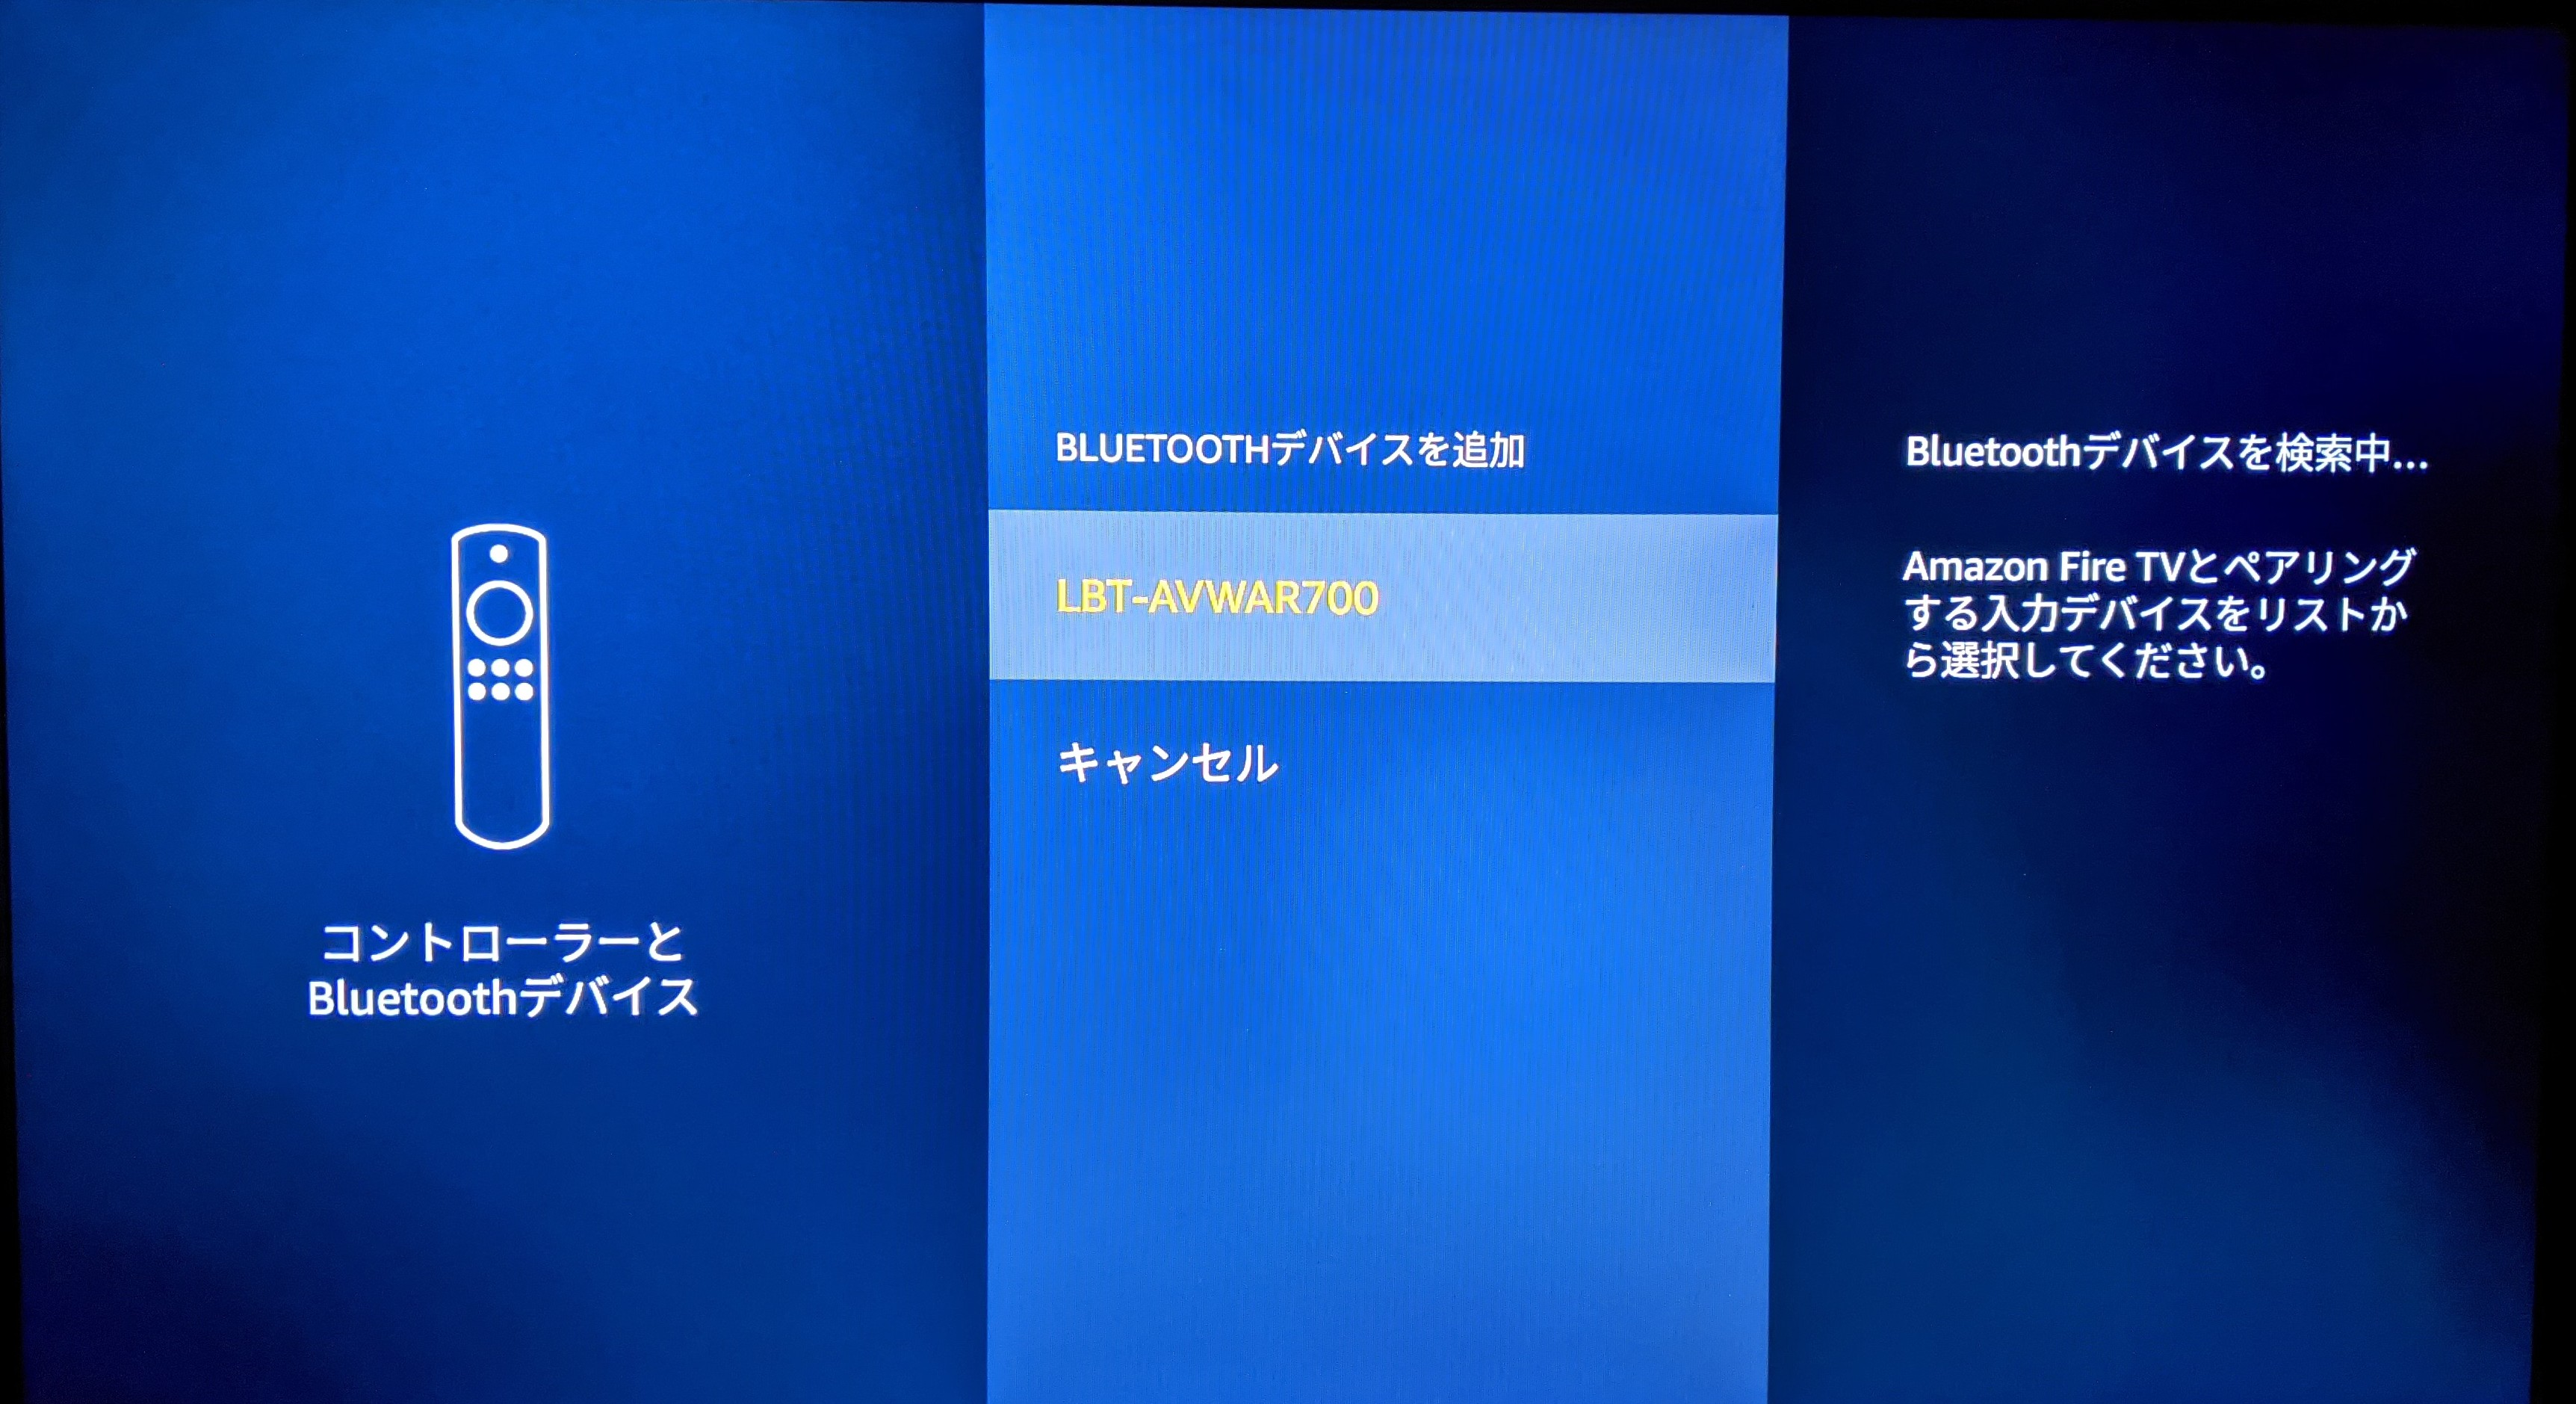 Bluetoothデバイス接続